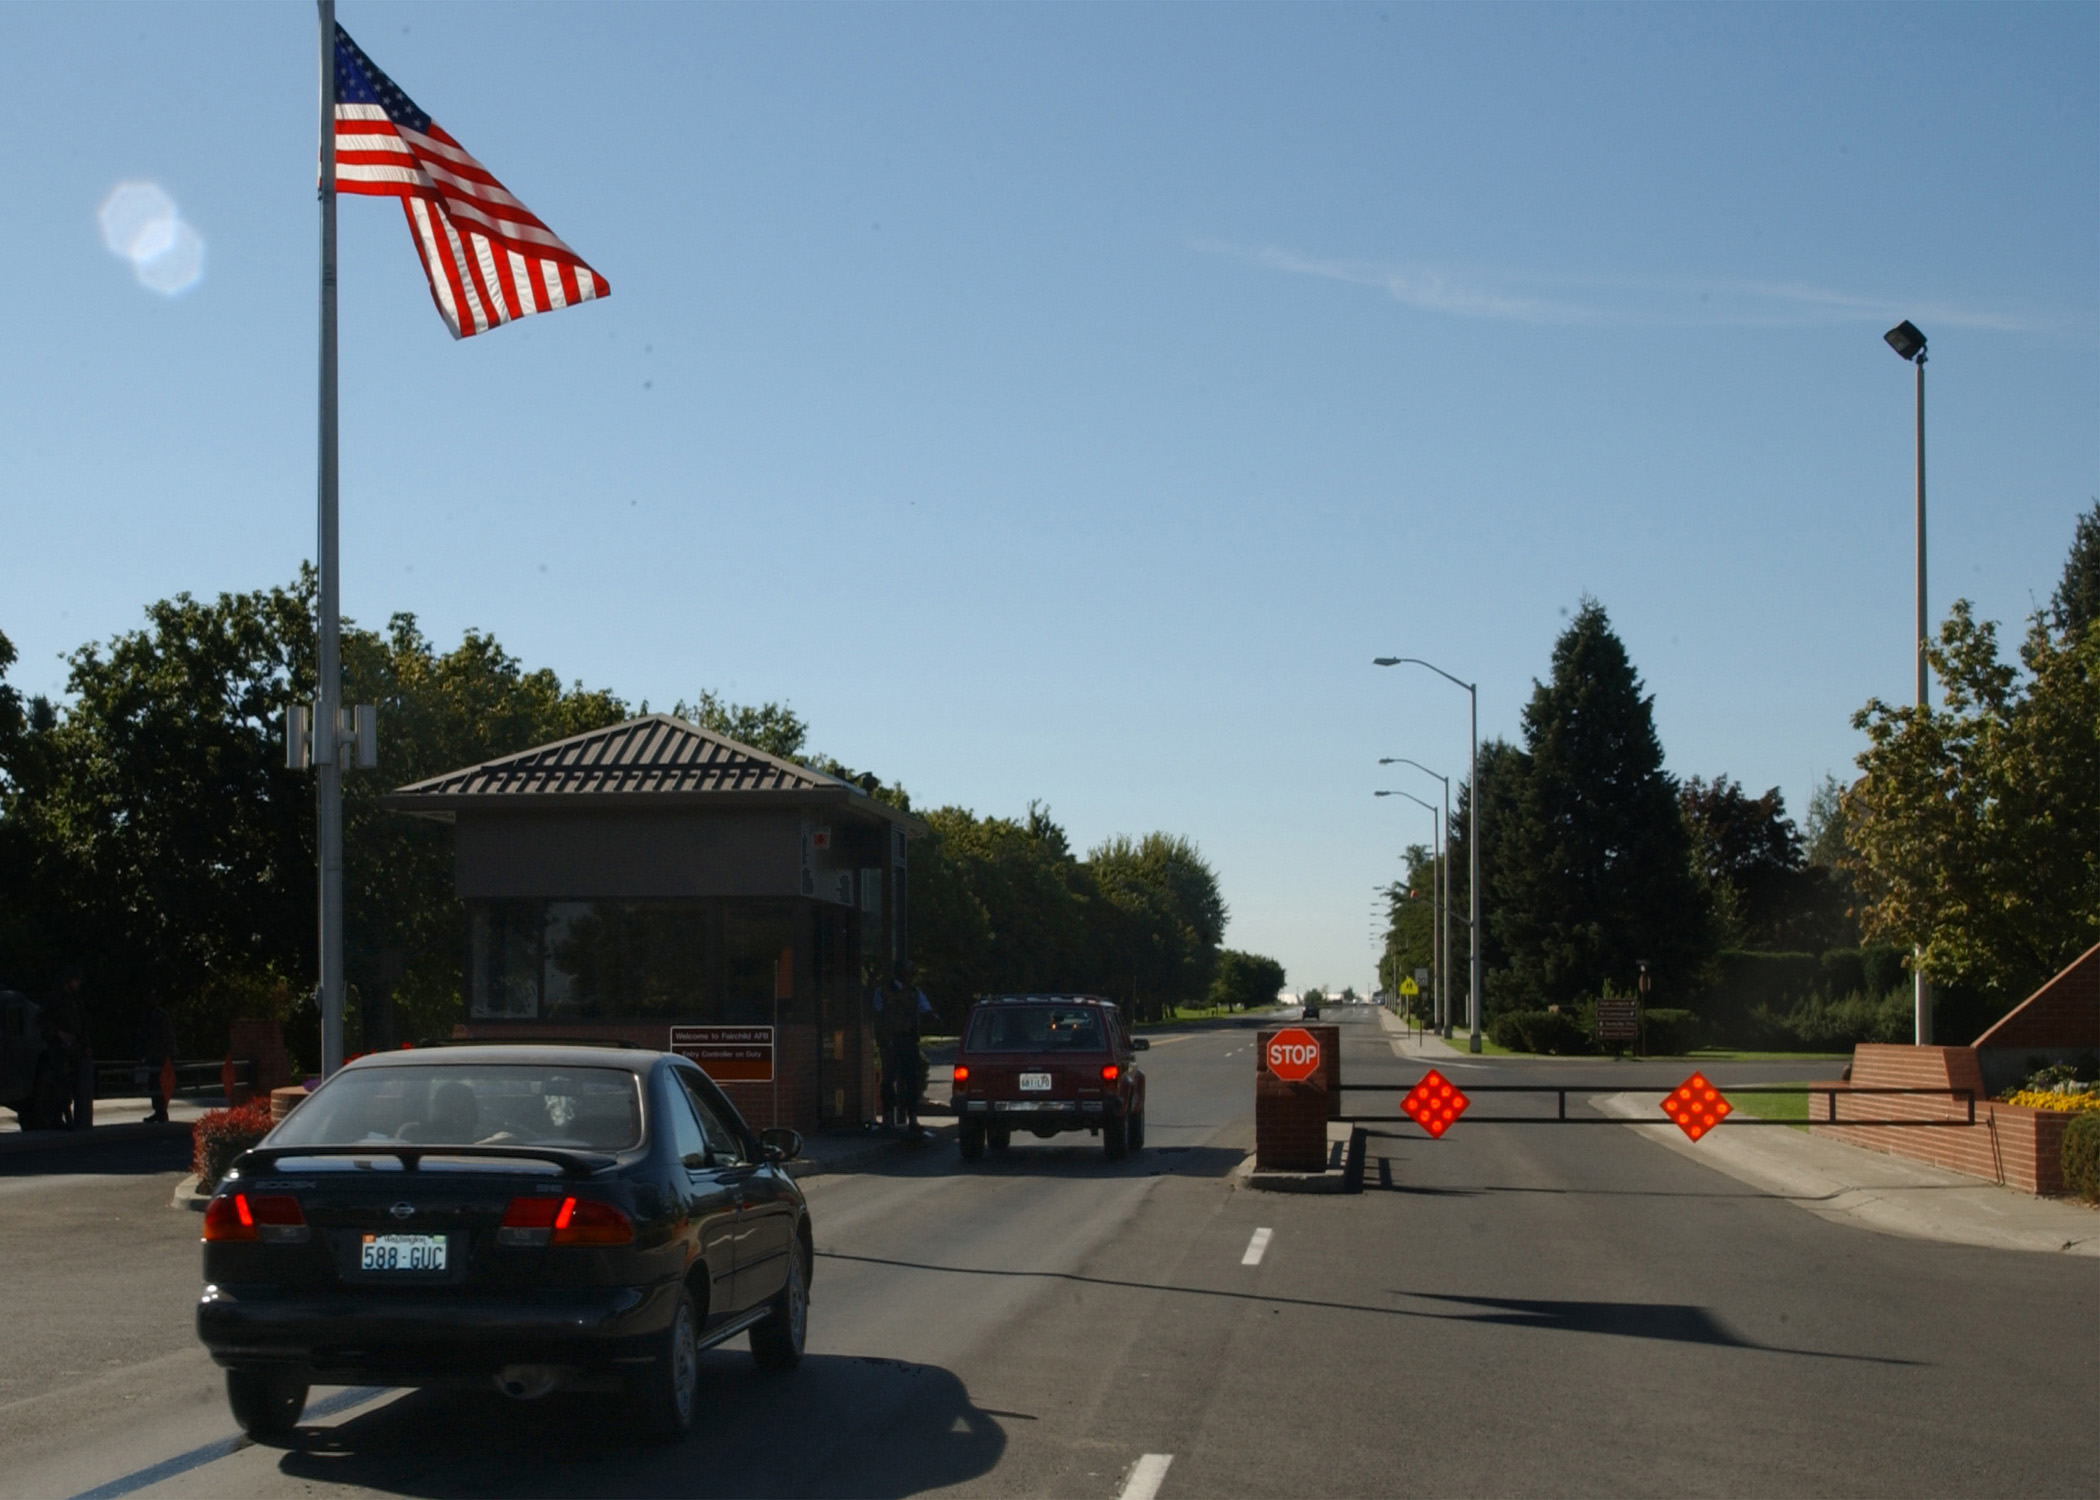 File:The main gate of Fairchild AFB, WASH on 11 September ...